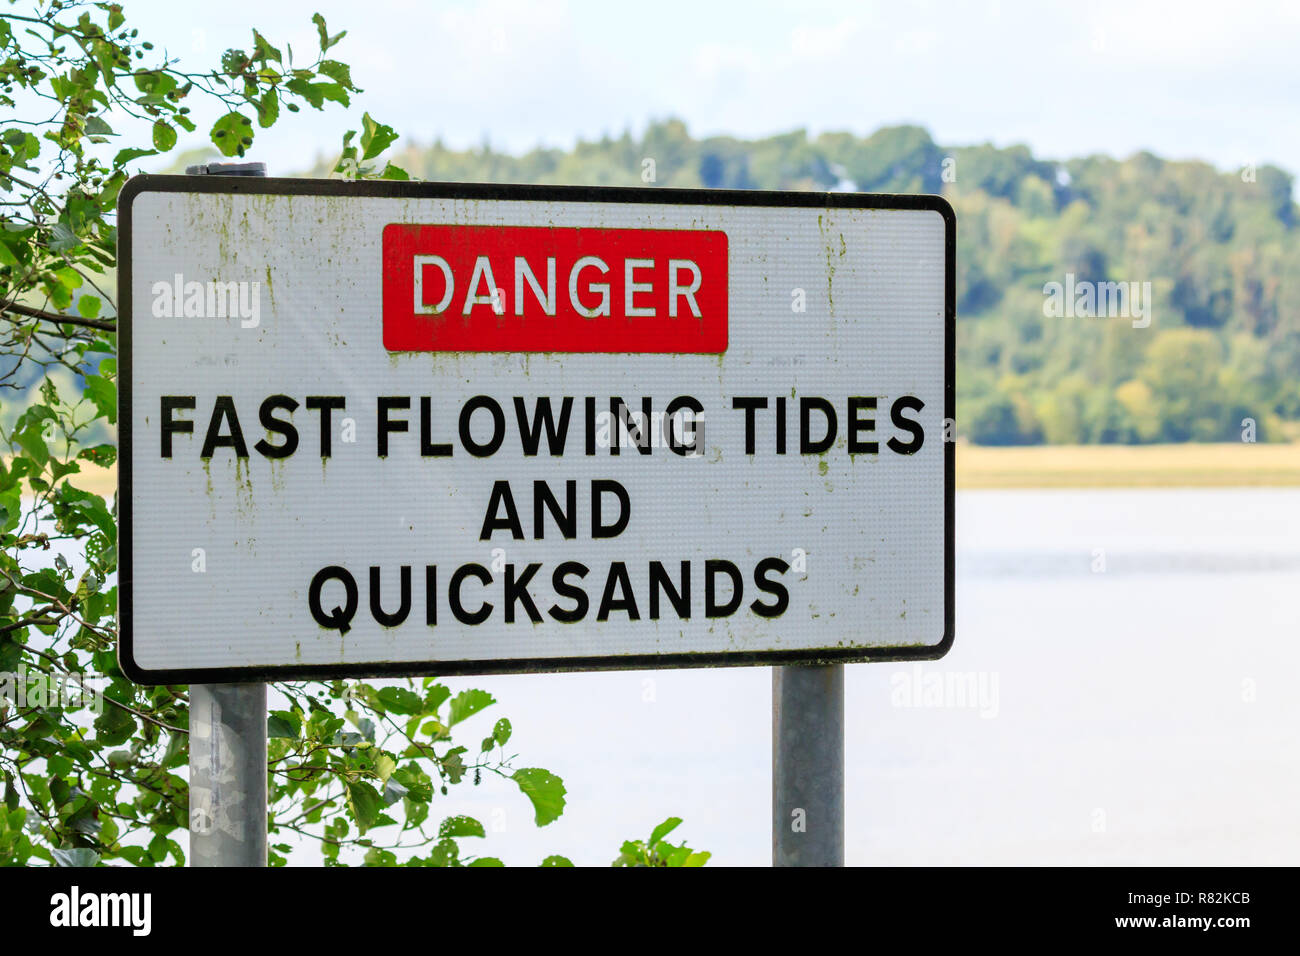 Danger Fast Flowing Tides and Quicksands sign Stock Photo